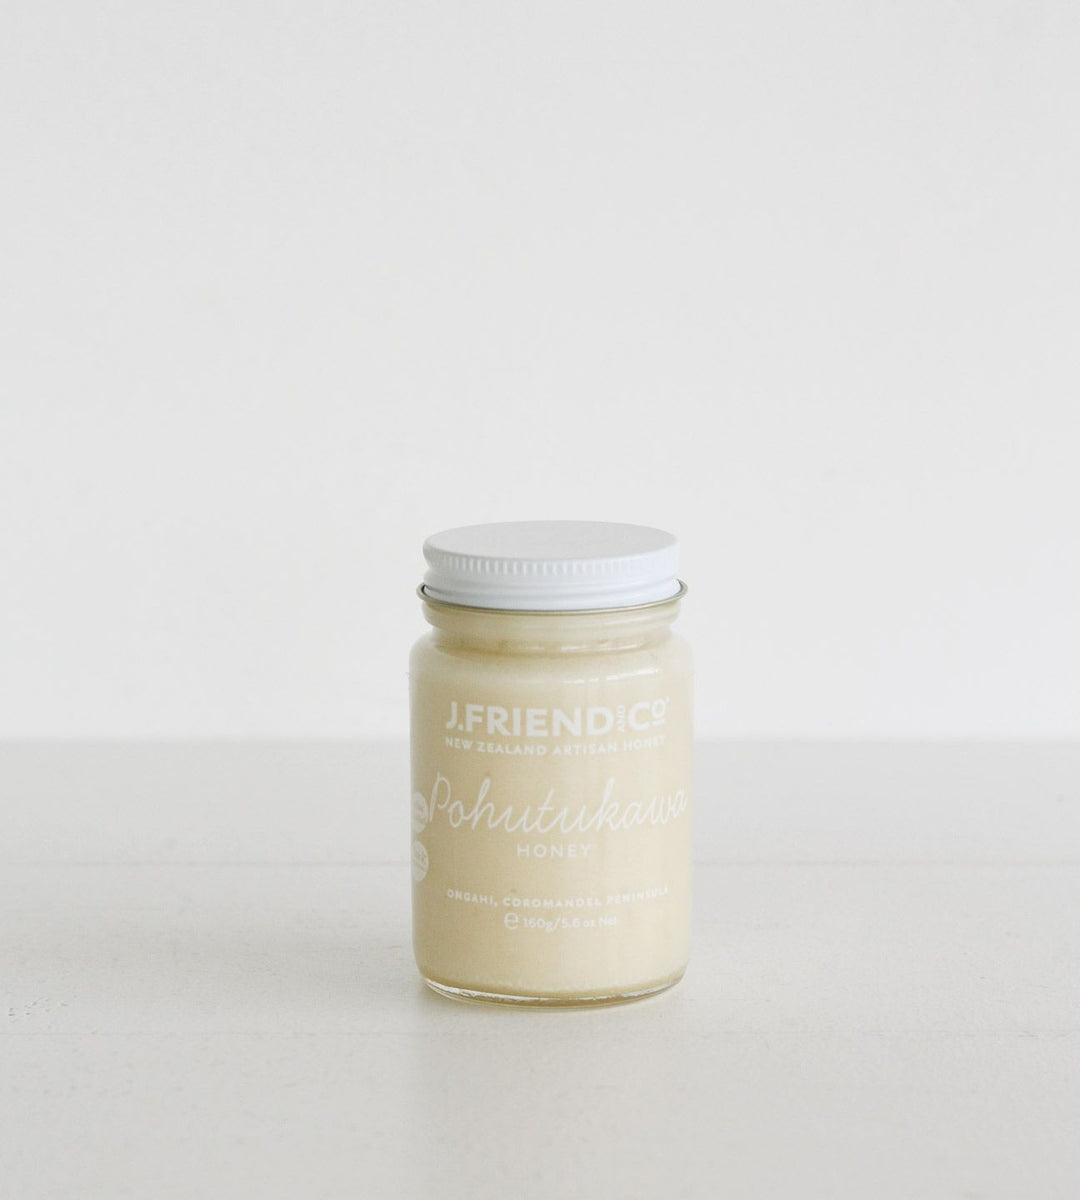 J. Friend & Co. | Pohutukawa Honey | 160g